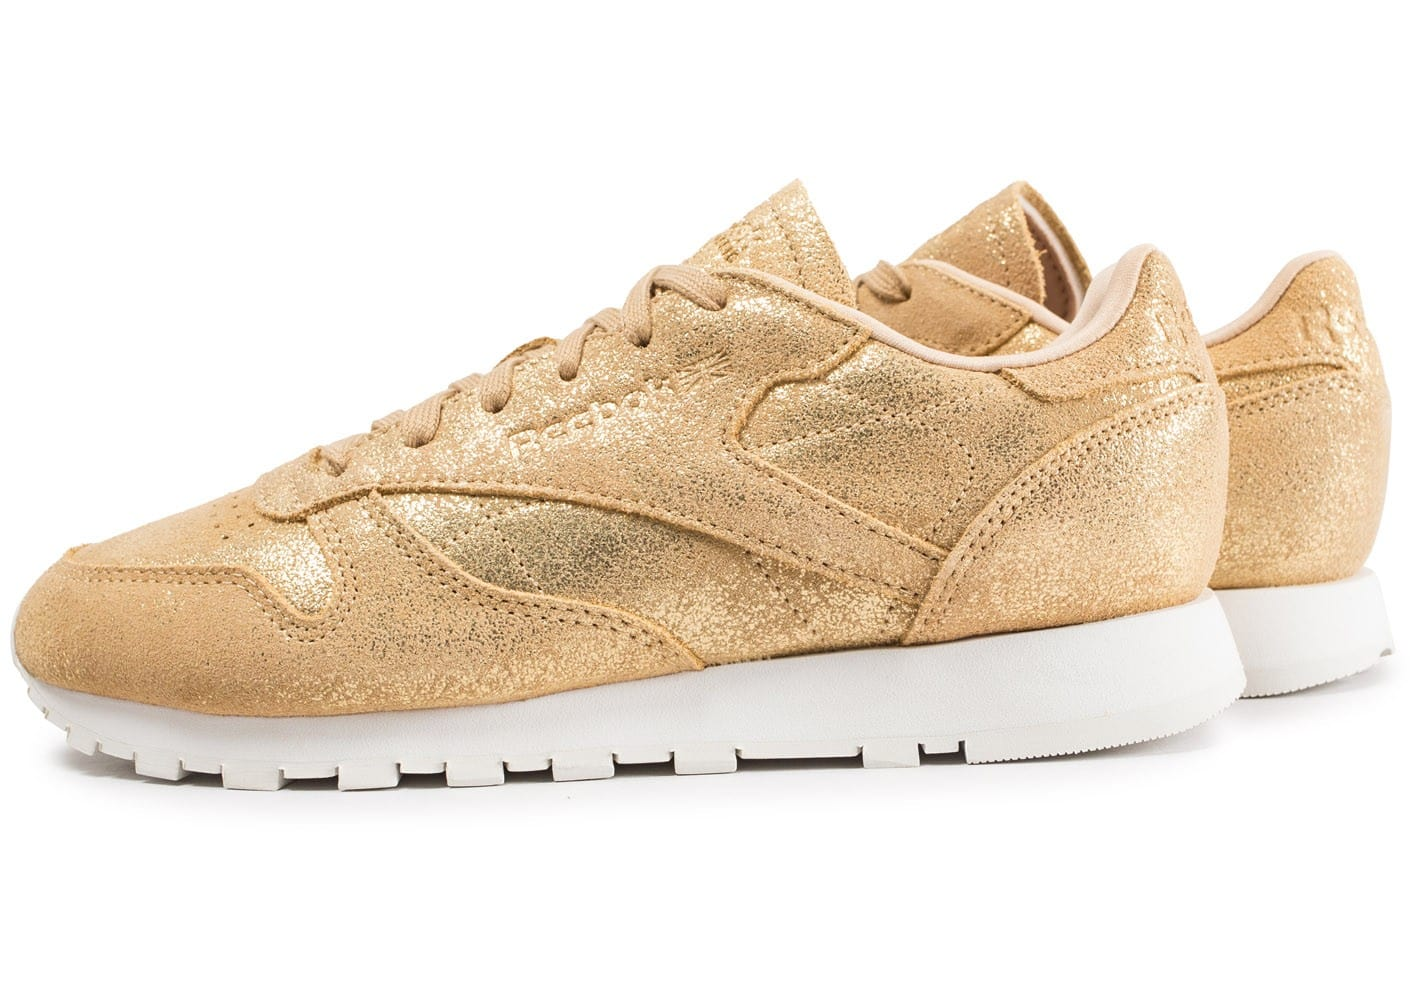 Reebok Leather Les Toutes Shimmer Baskets Or Classic Chaussures rpg5qnSrw